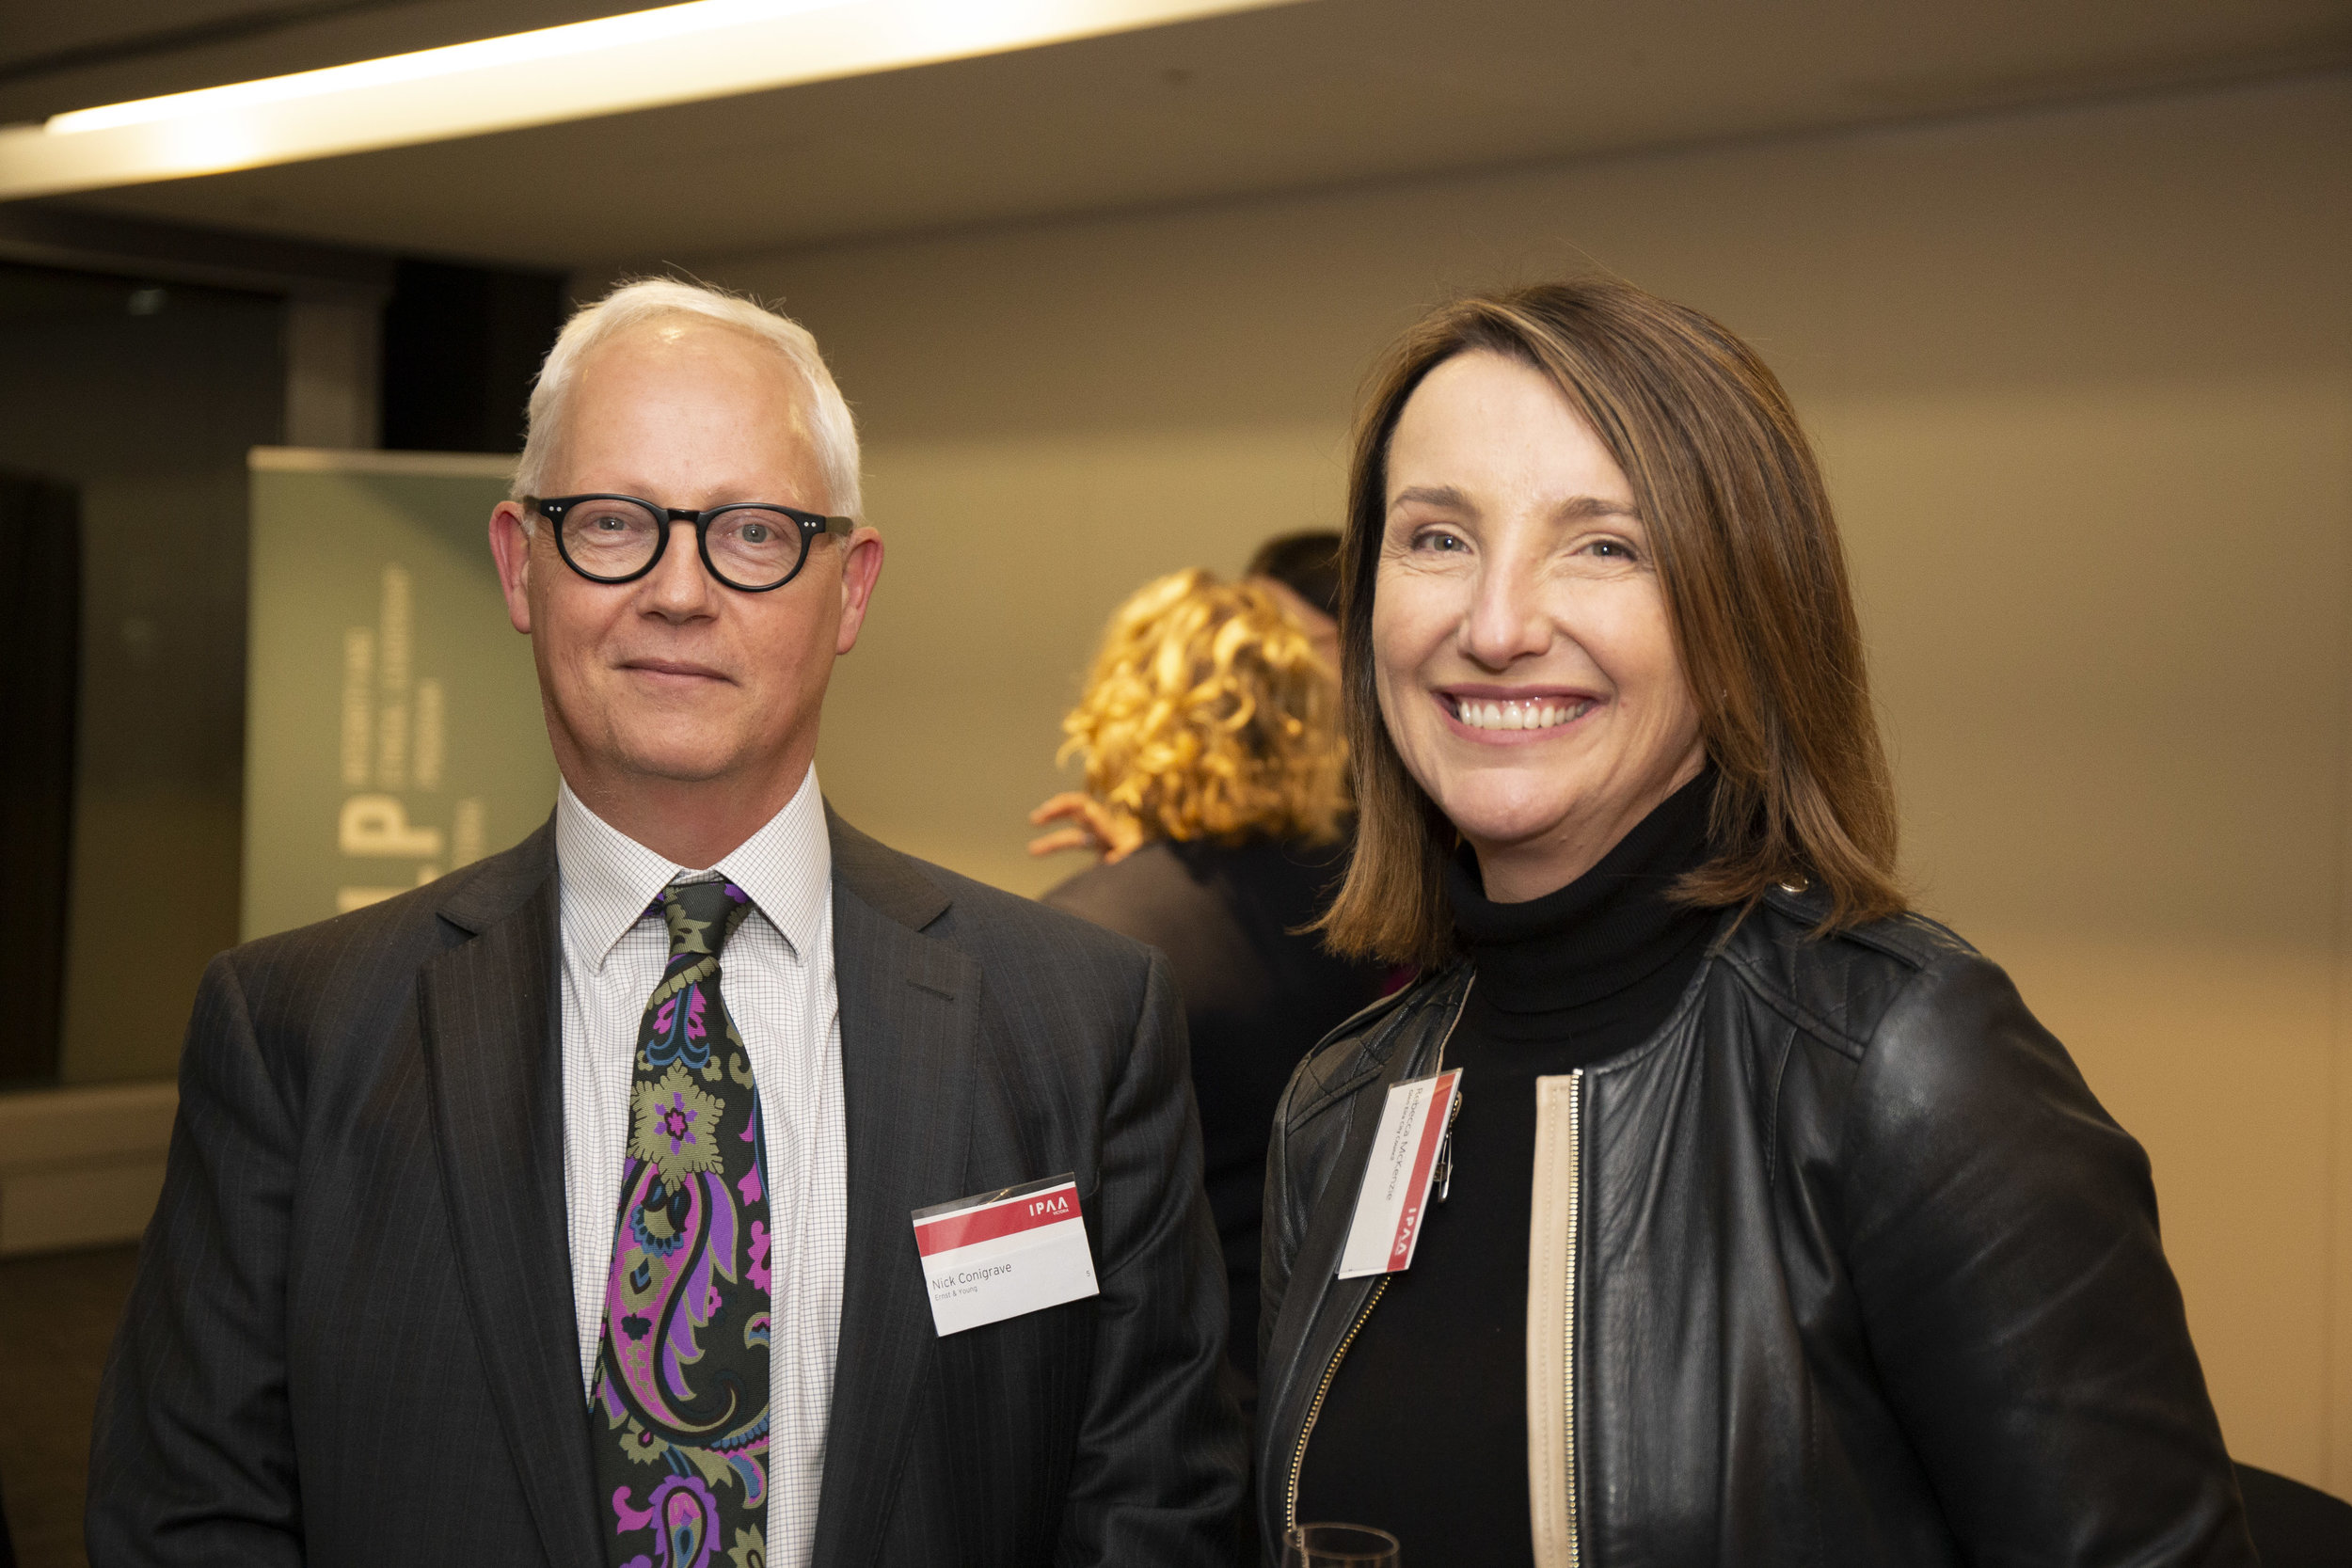 Left to right: Nick Conigrave (EY) and IELP alumna Rebecca McKenzie (Glen Eira City Council)